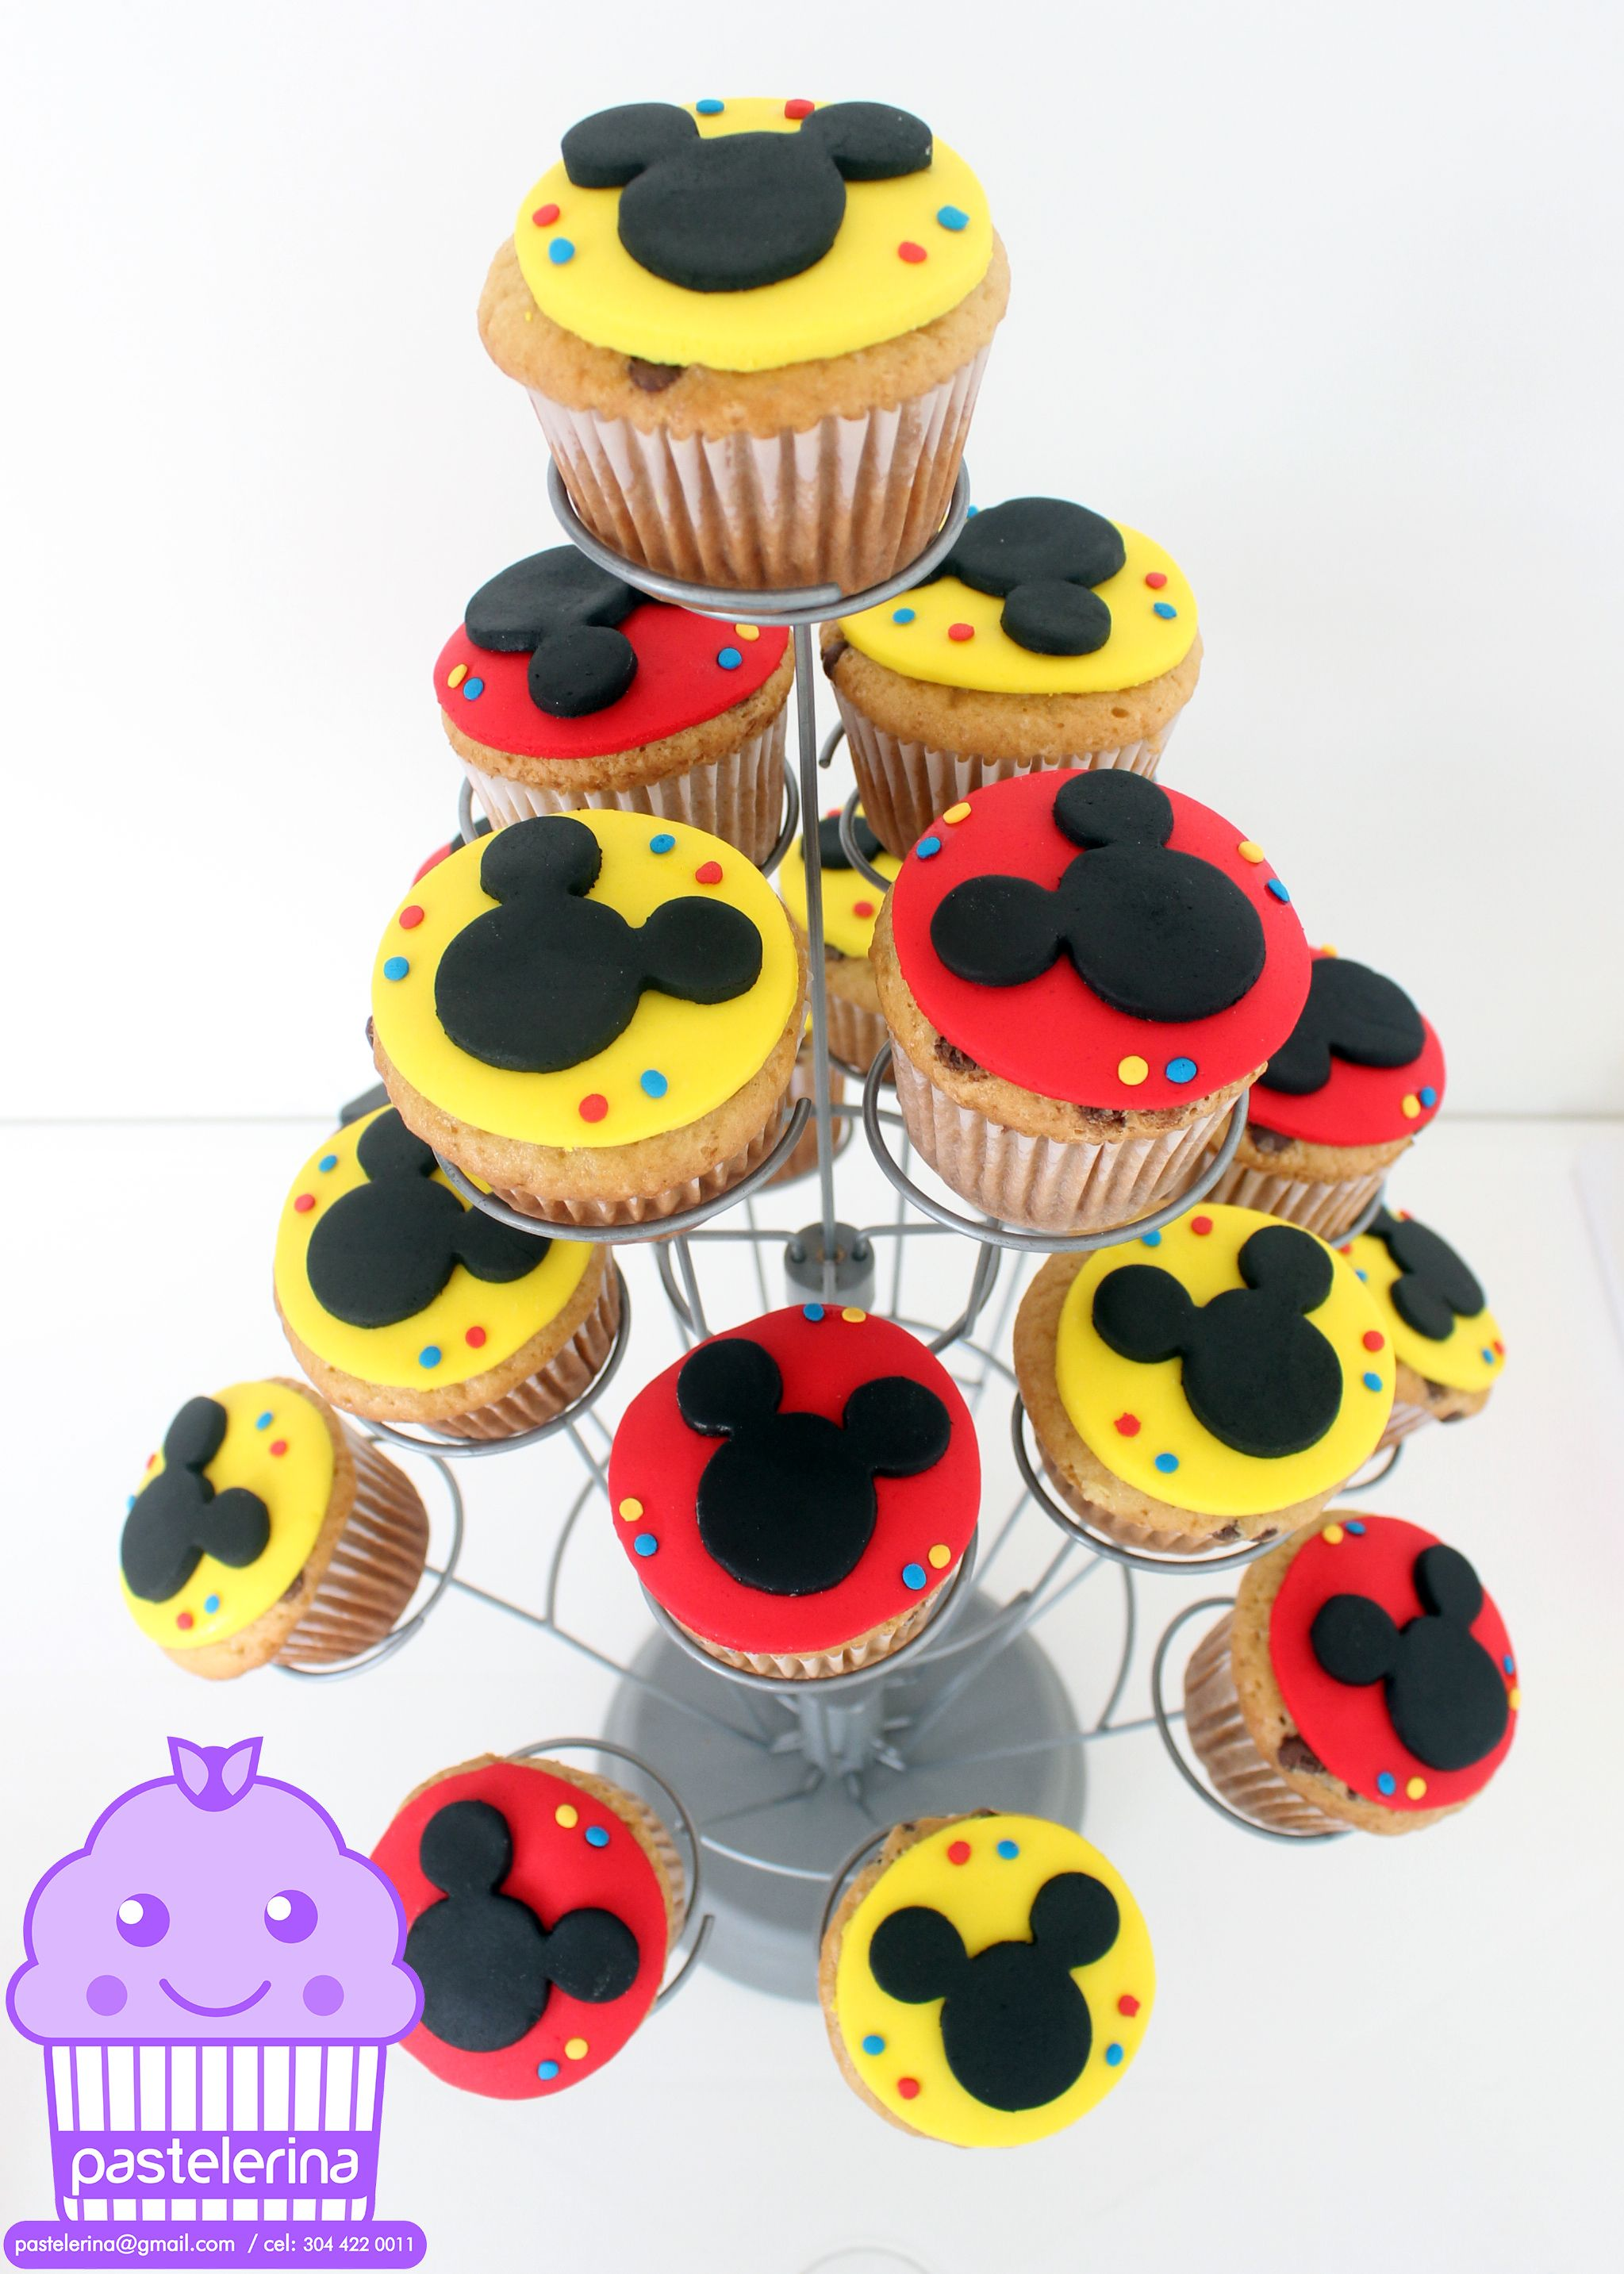 Mickey Mouse Cupcakes 2 25 Per Cupcake 90 For 40 Cupcakes